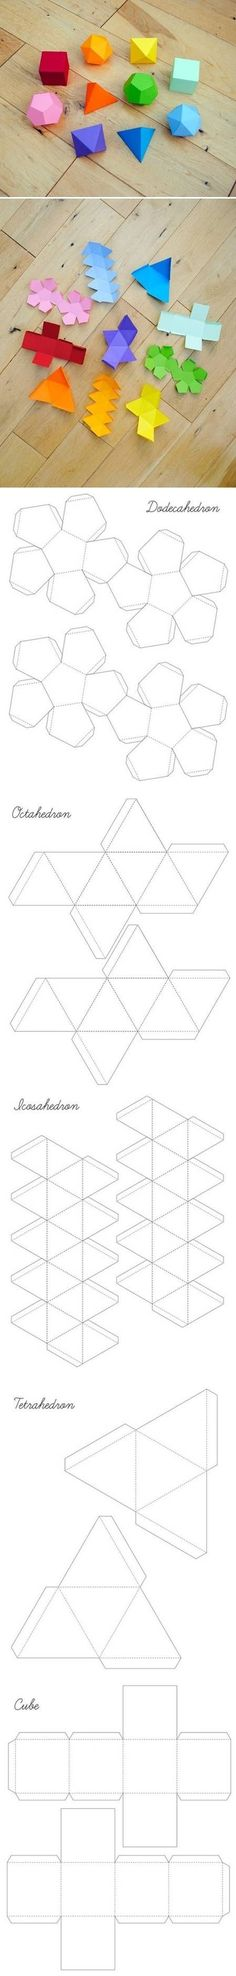 DIY Geometrical Box Templates by diyforever For the end of the school year geometry fun